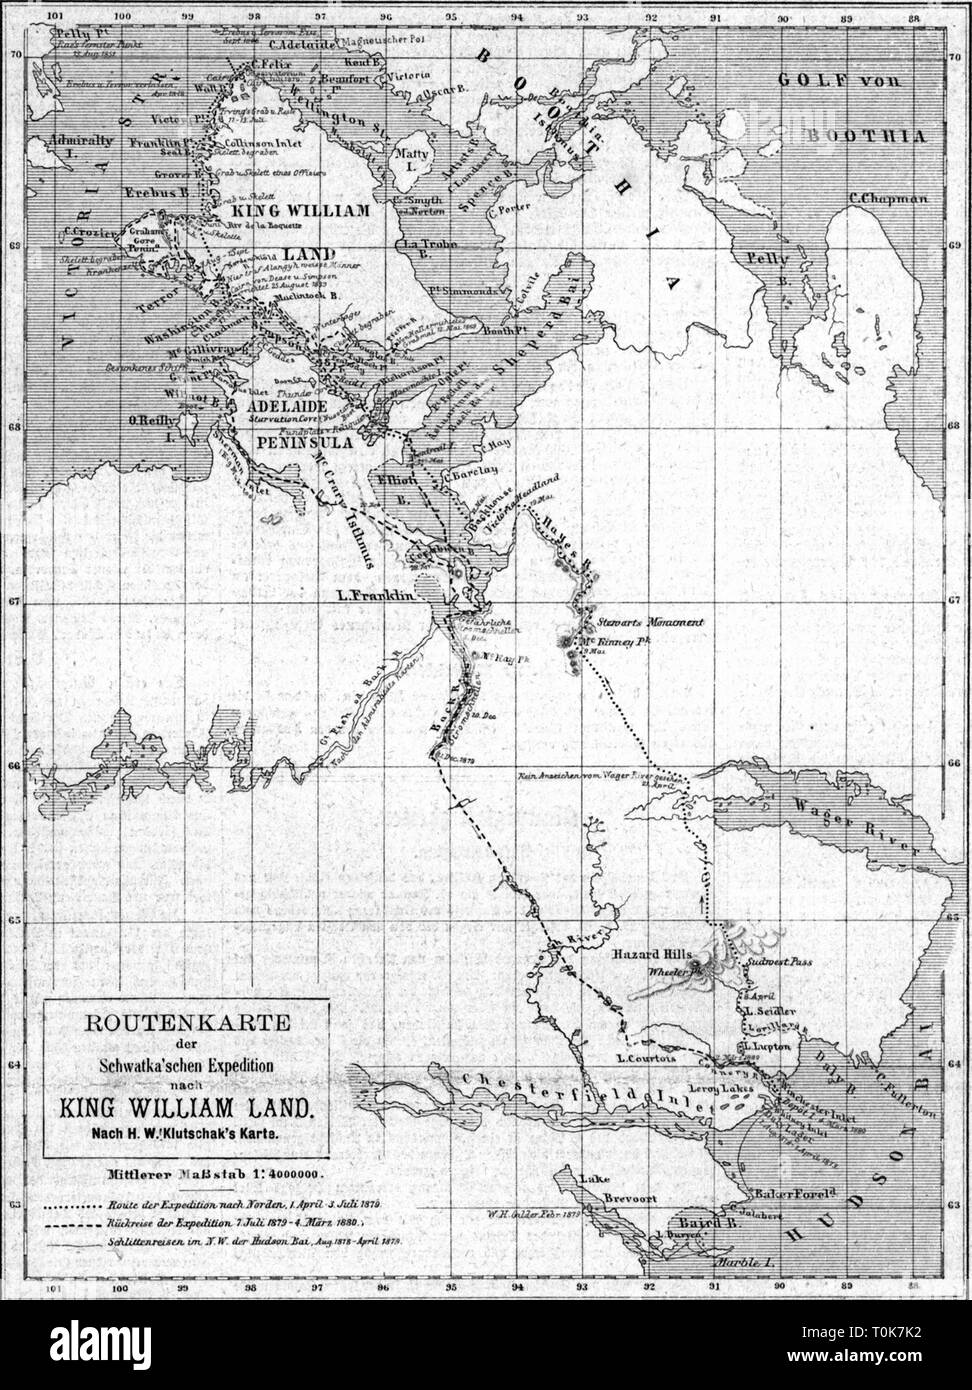 cartography, map, America, Canada, Nunavut, Baffin peninsula, with the route of the expedition of Frederick Schwatka 1879 - 1880, wood engraving after drawing of Heinrich Klutschak, 1881, search for John Franklin, Baffinland, Hudson Bay, King William Island, Adelaide peninsula, Boothia, Wager river, Chesterfield Inlet, Northwest Territories, North-west territory, District of Keewatin, North America, 19th century, historic, historical, Additional-Rights-Clearance-Info-Not-Available - Stock Image